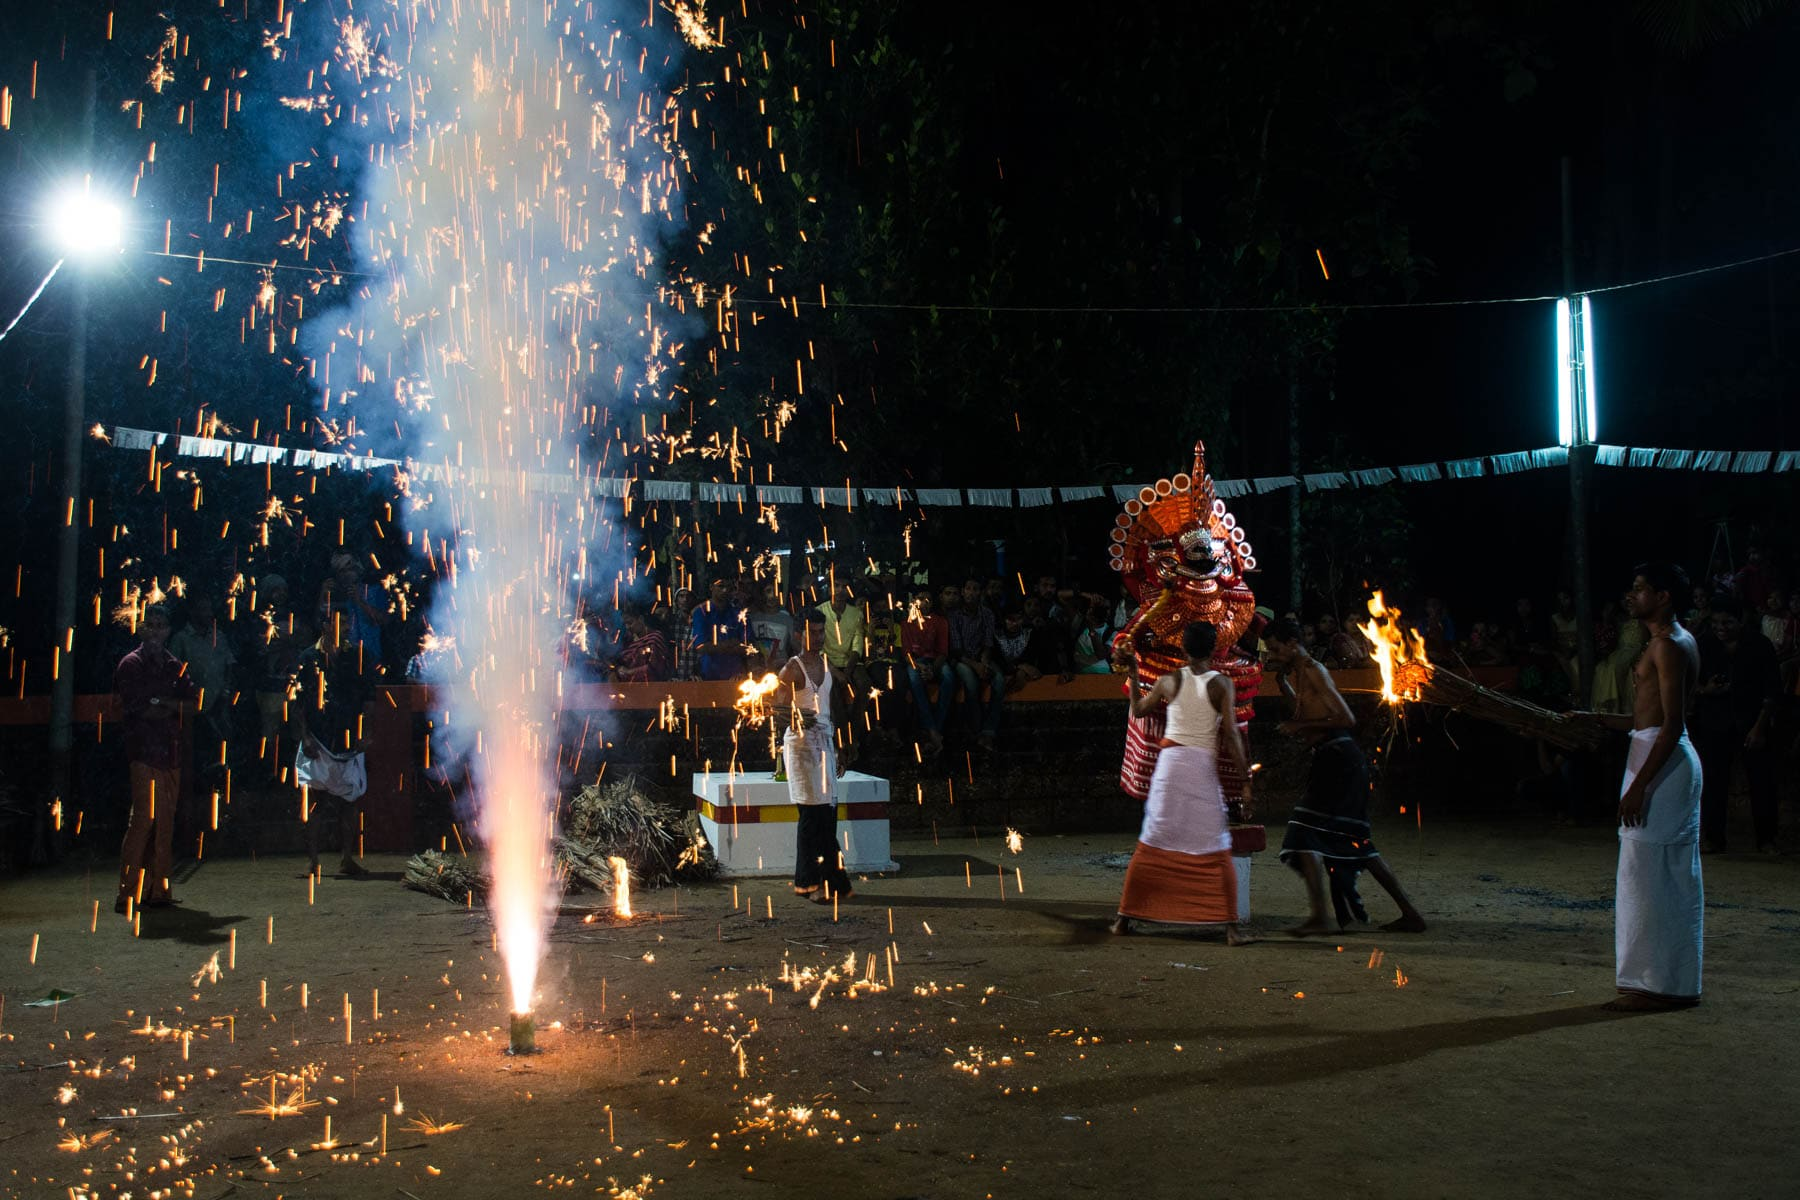 A Theyyam ritual with fireworks - Where to see Theyyam in Kerala, India - Lost With Purpose